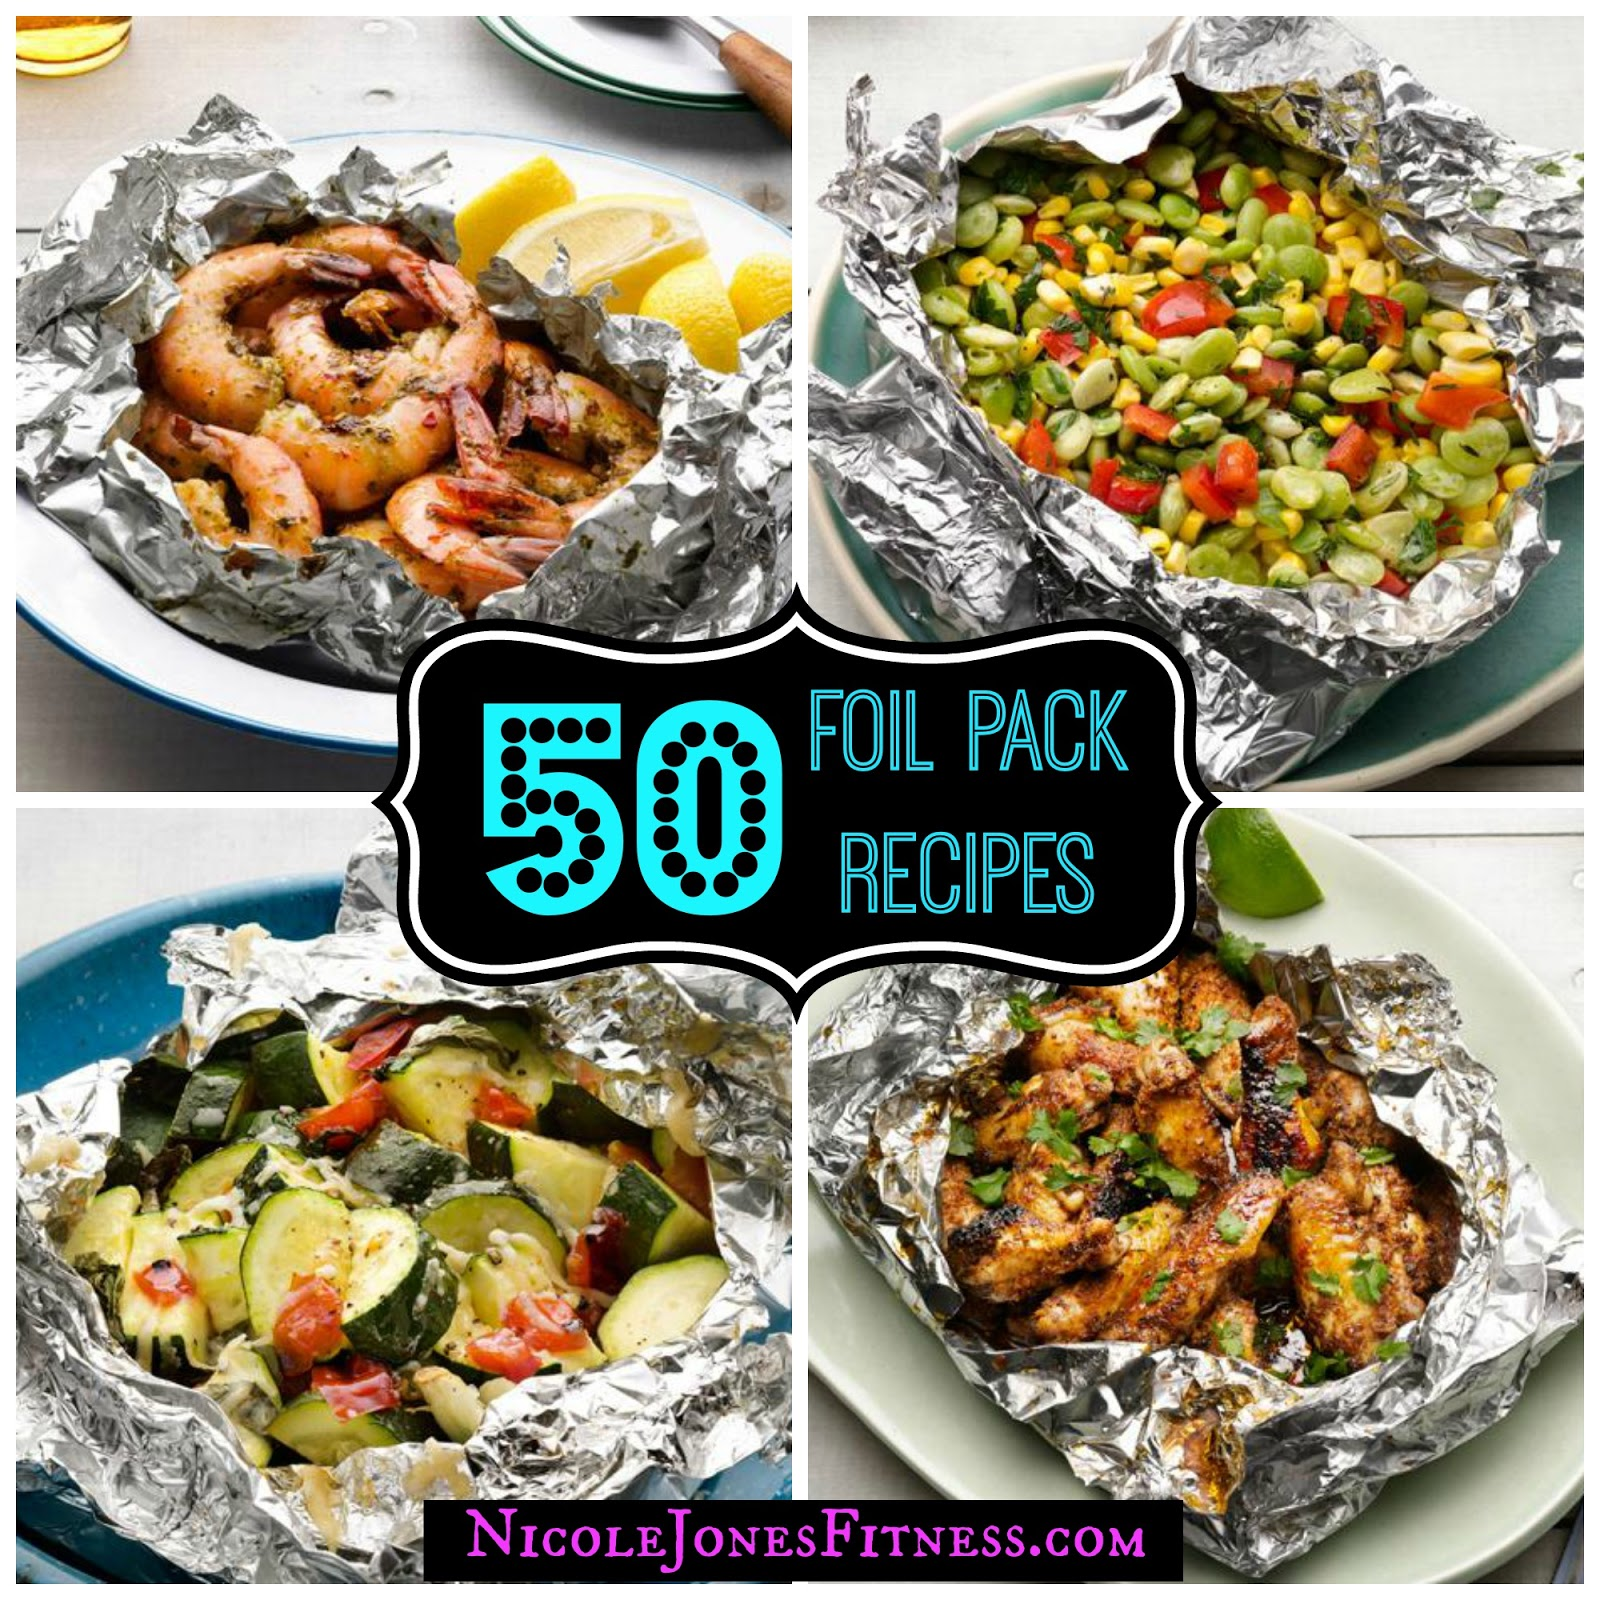 Nicole Jones: 50 Things To Grill In Foil